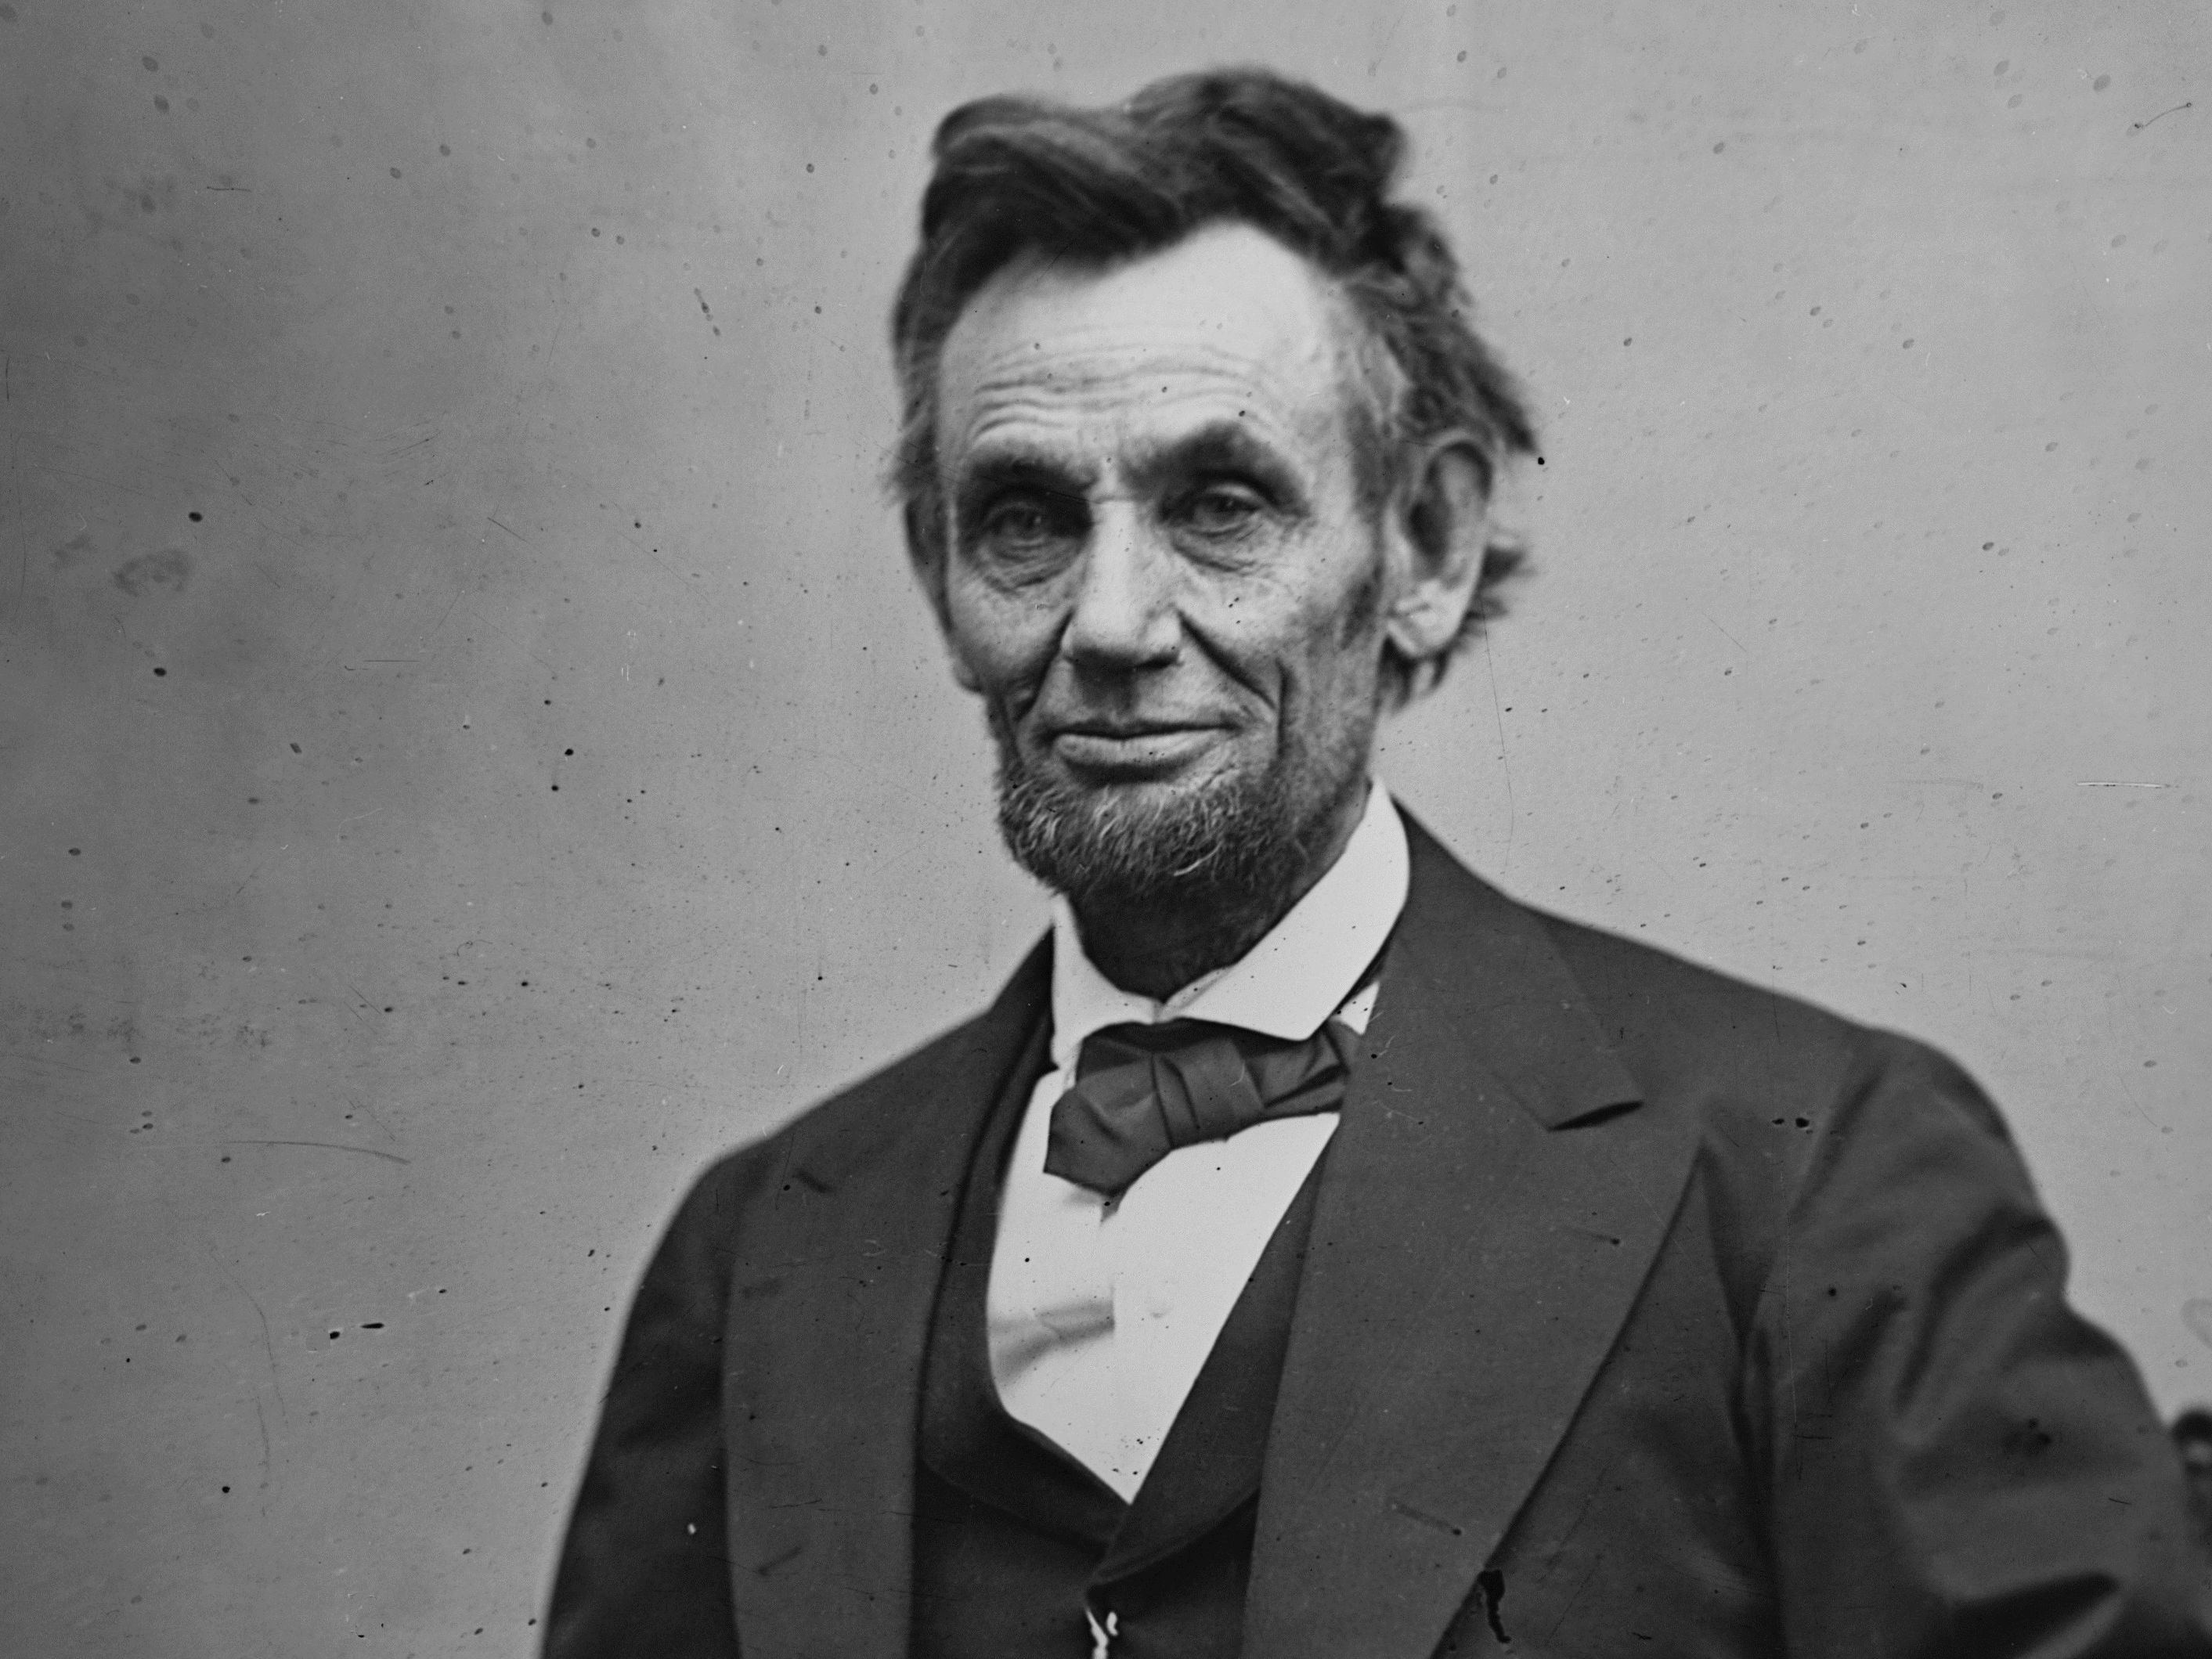 Lincoln's Emancipation Proclamation and Black Lives Matter